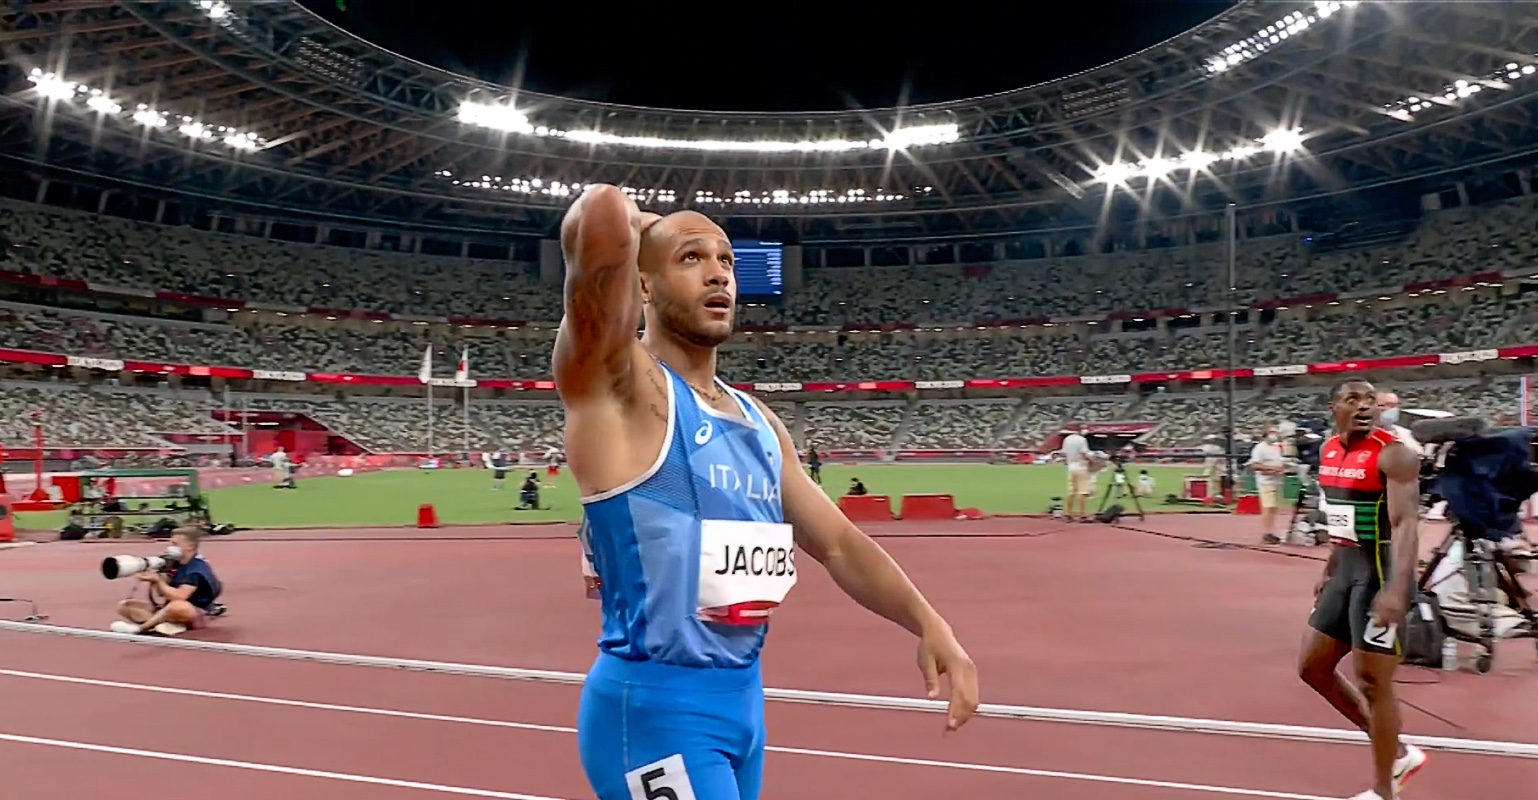 Lamont Marcell Jacobs of Italy wins the 100m at Tokyo 2020 Olympics